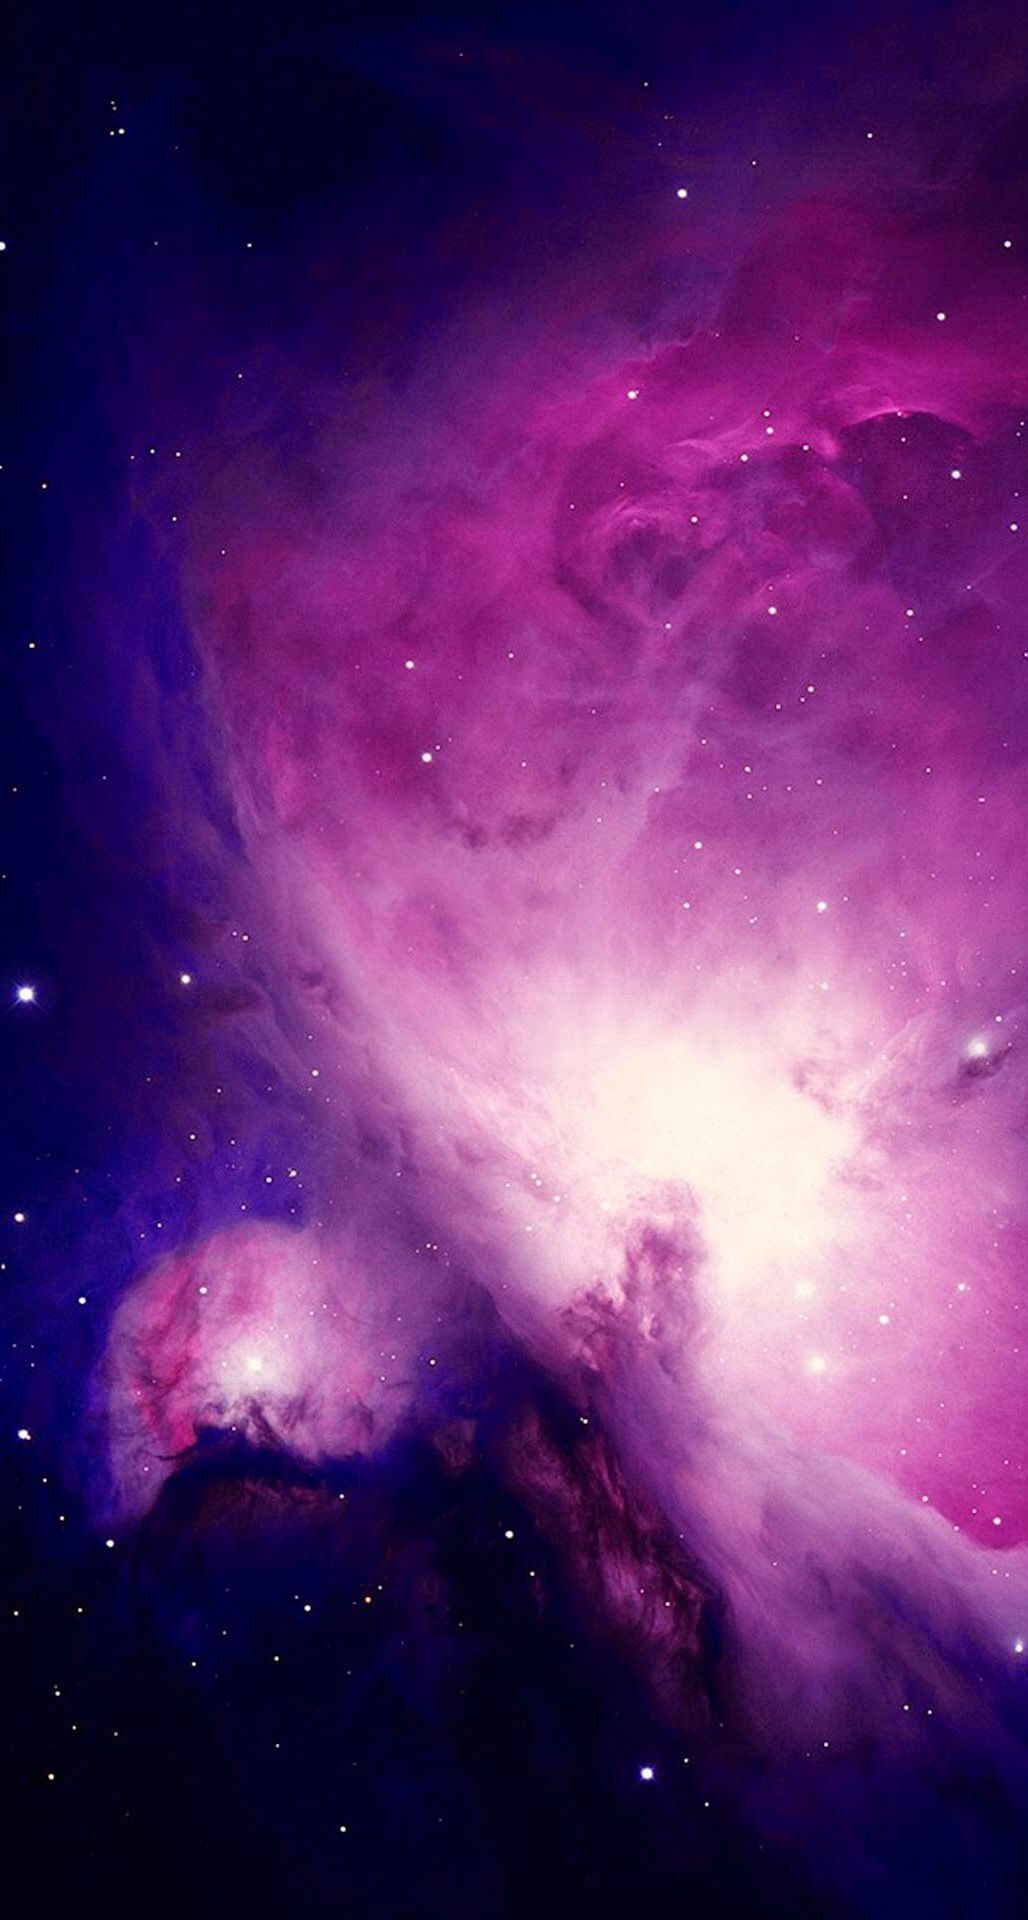 Wallpaper iphone violet - 50 Space Iphone Wallpaper